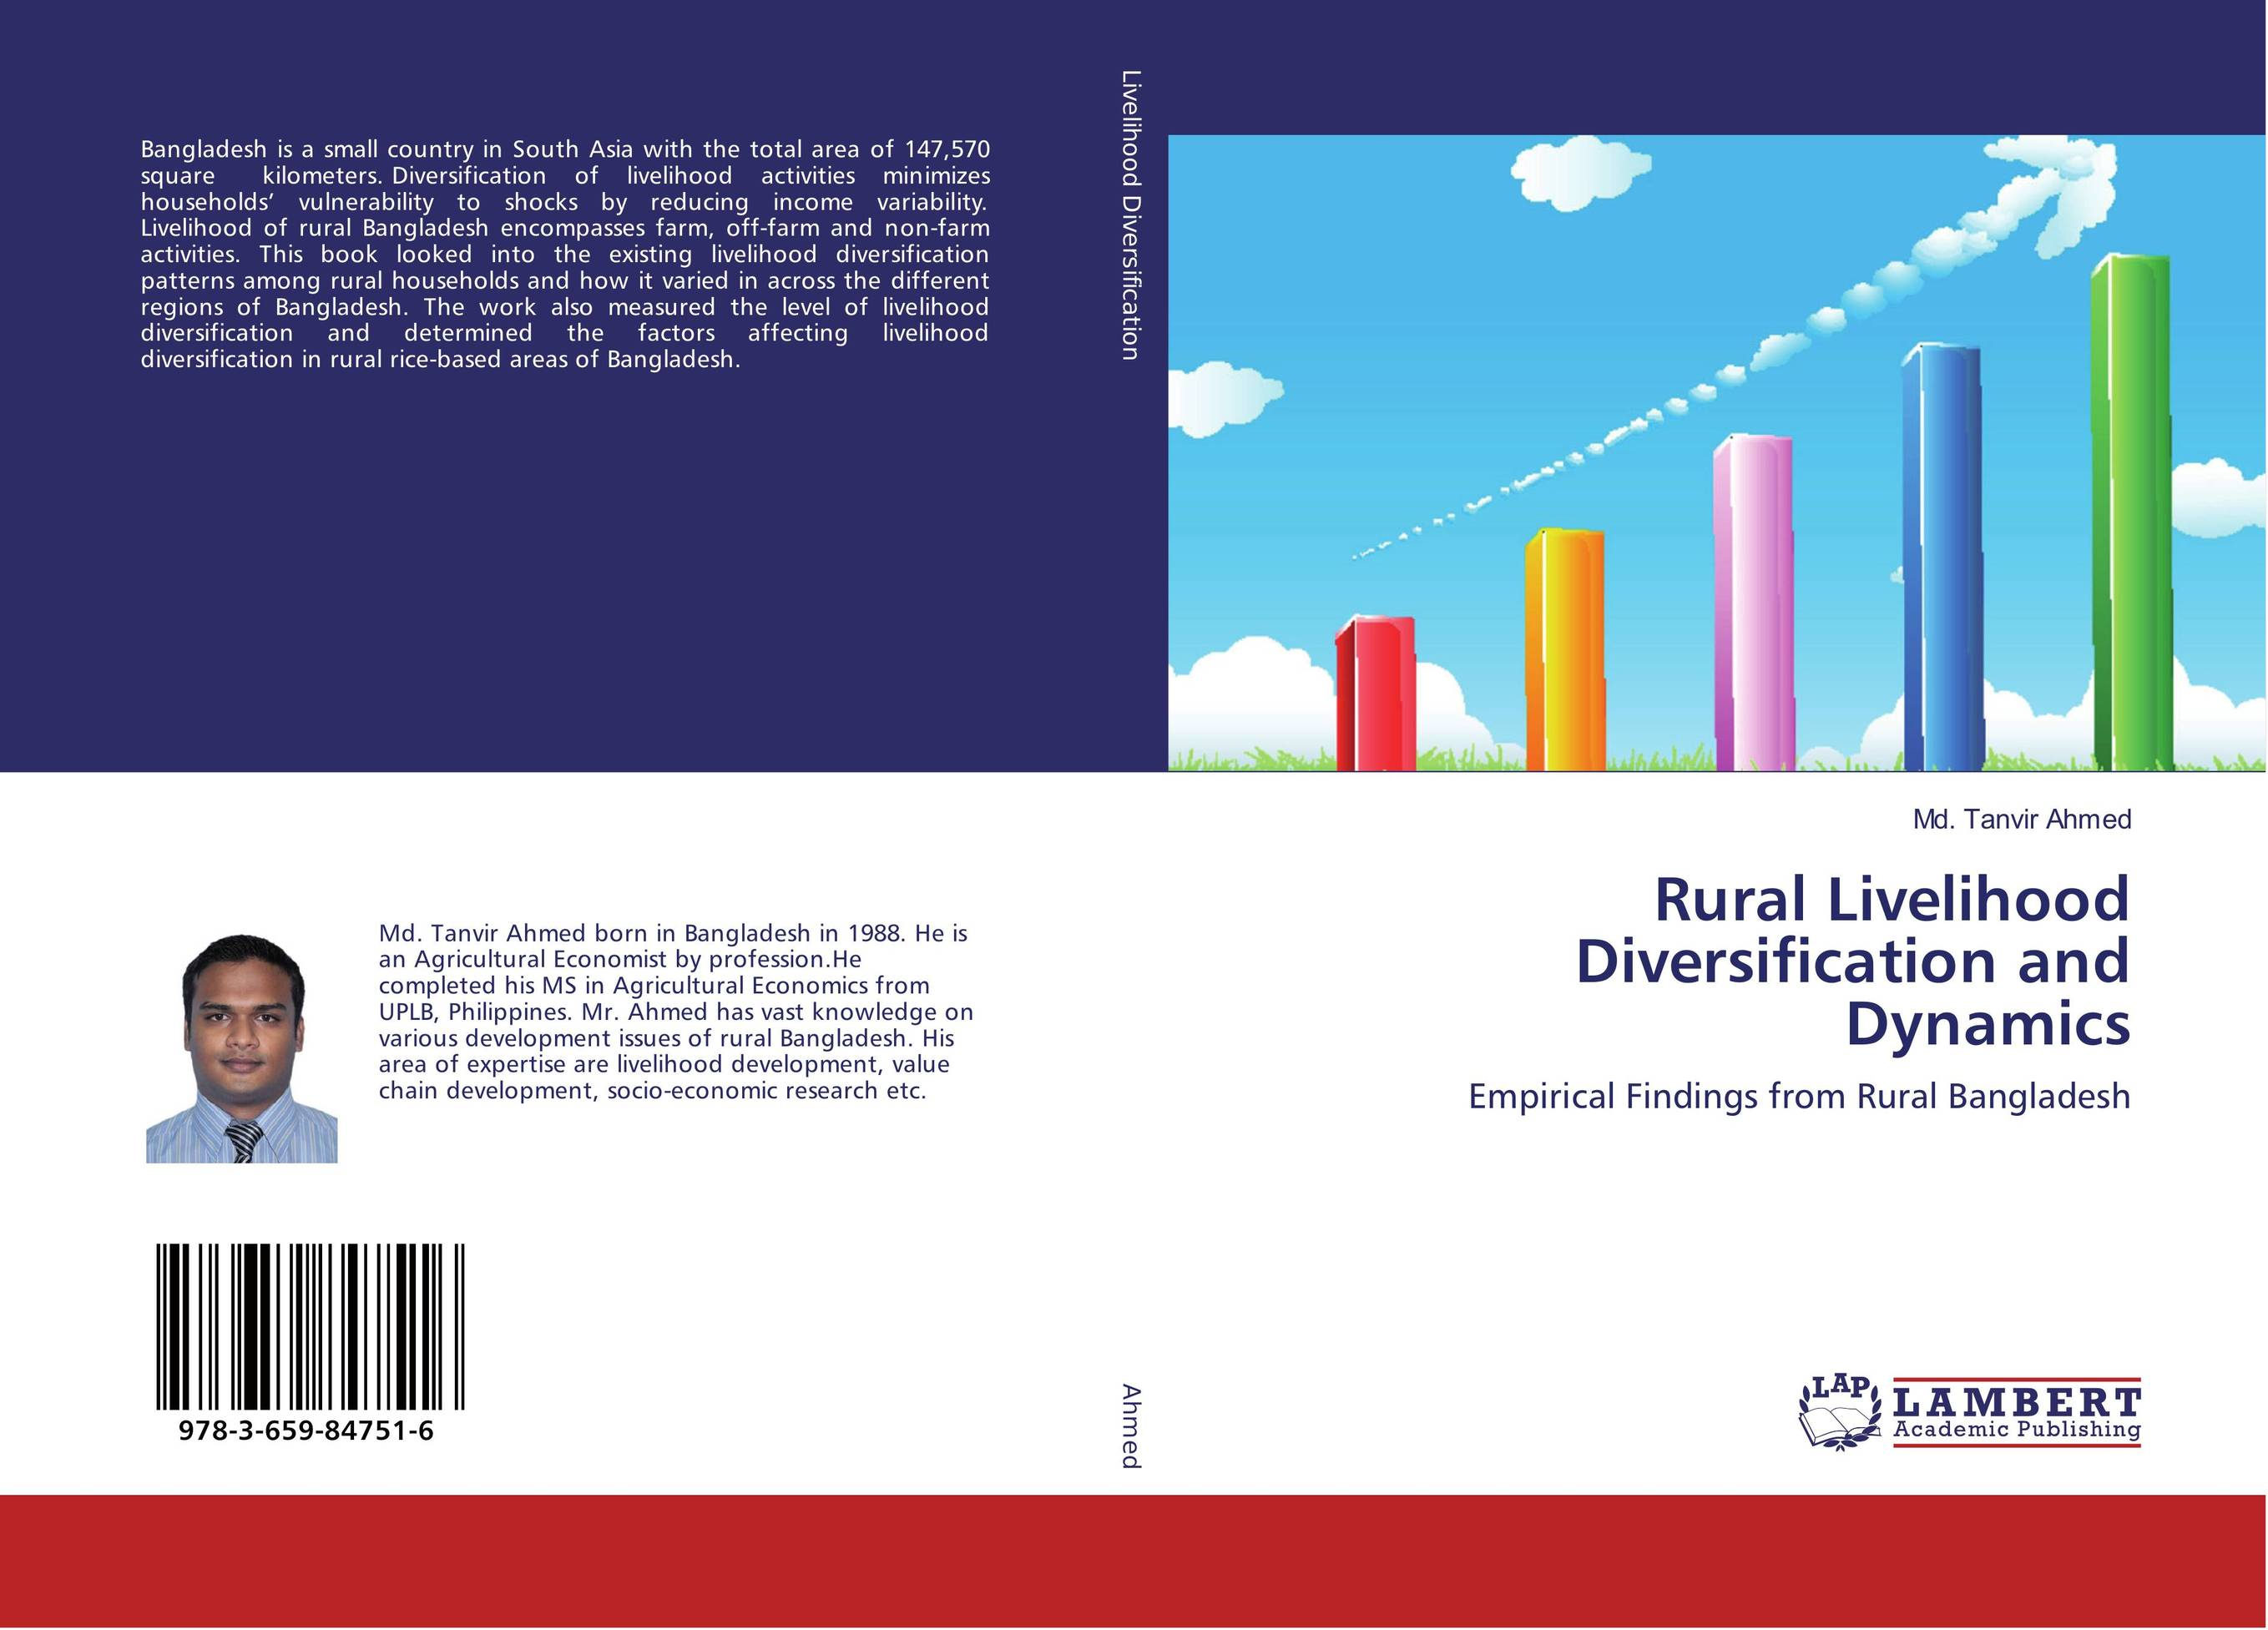 Rural Livelihood Diversification and Dynamics impact of livelihood diversification on food security